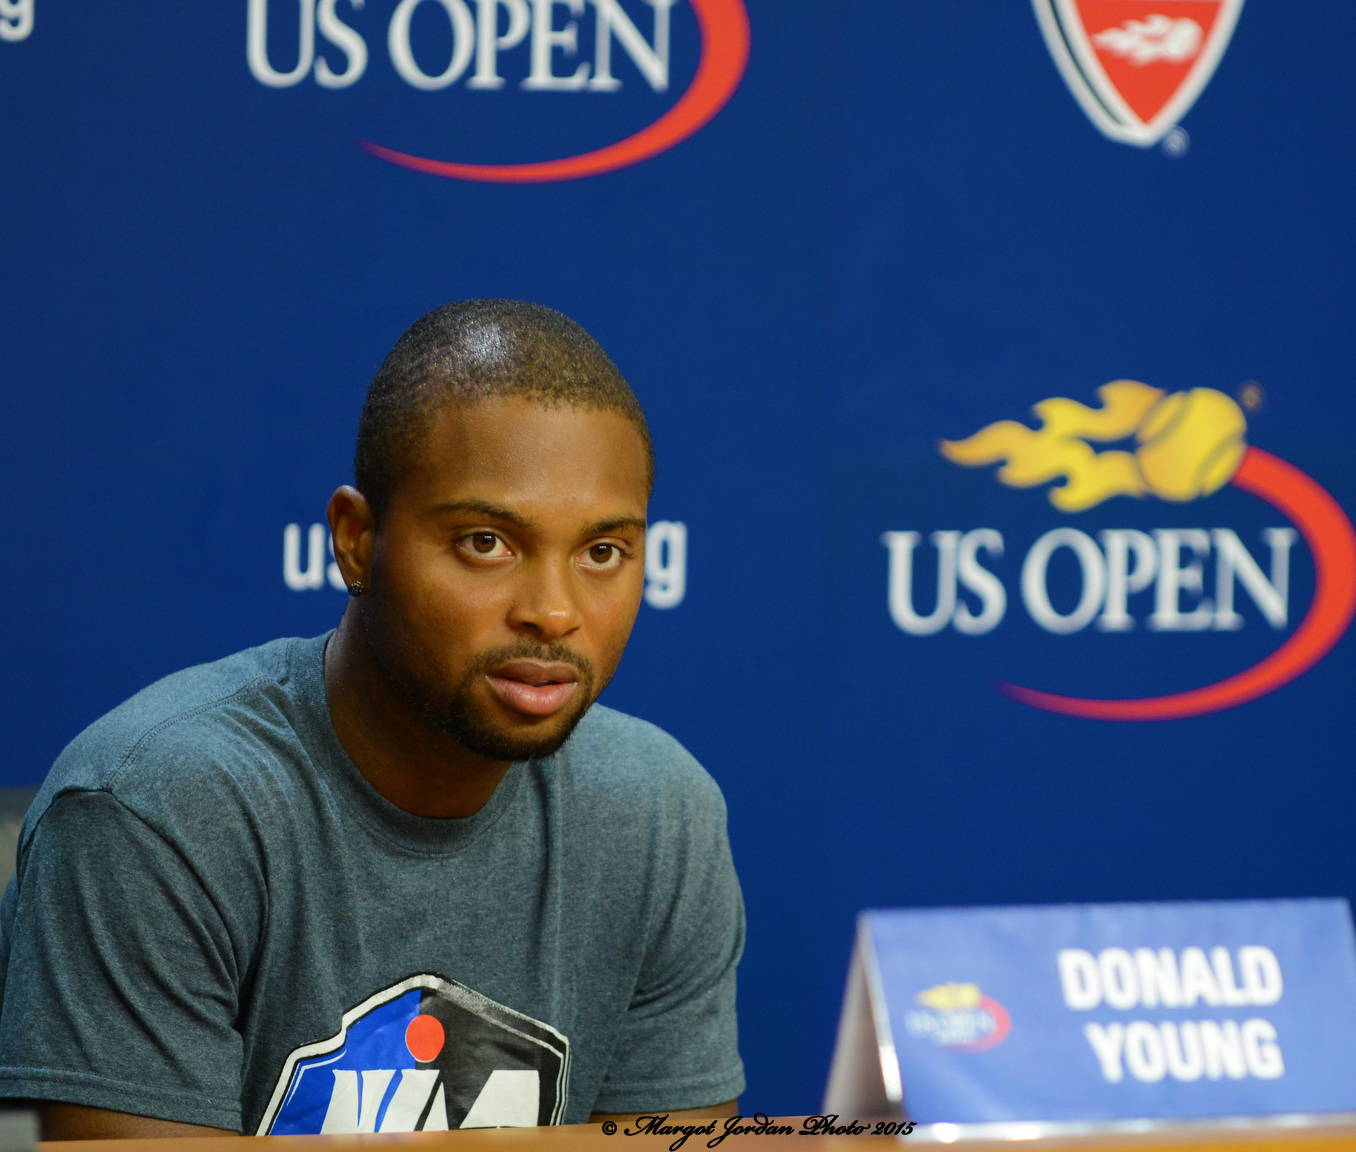 Donald Young in a post match press conference.  (photo credit: Margot Jordan)